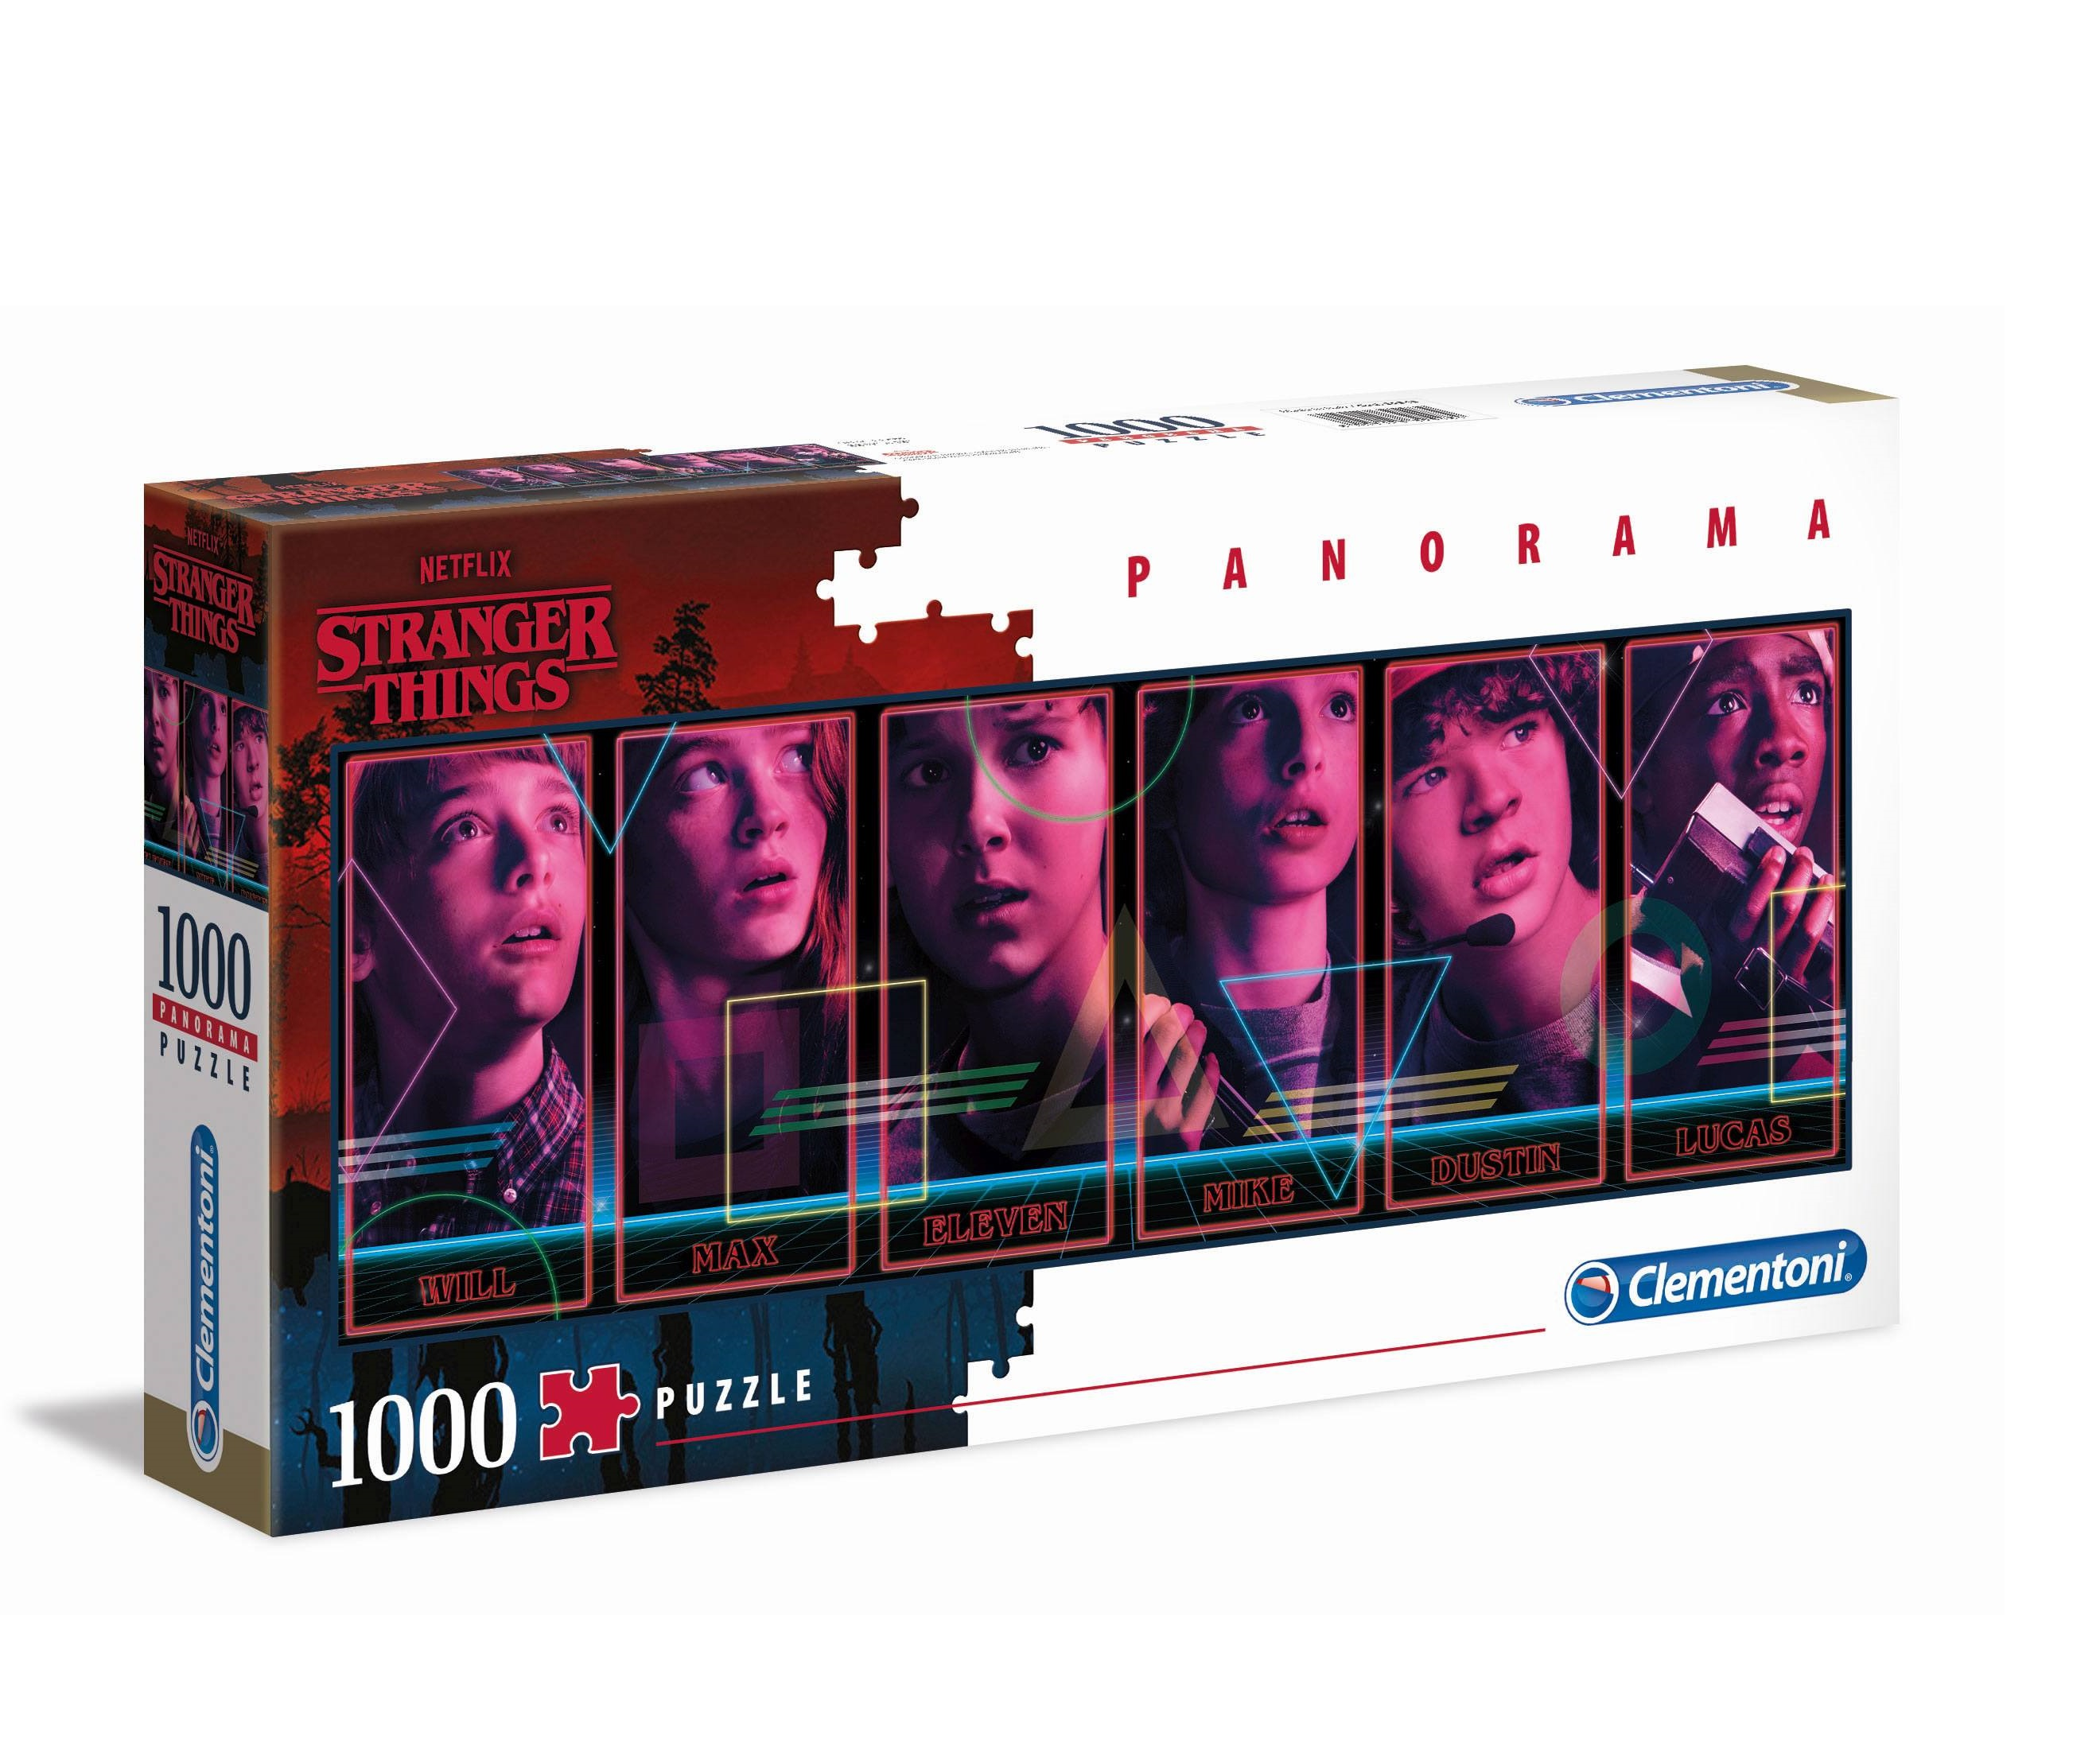 Puzzle - Stranger Things Panorama Puzzle Characters